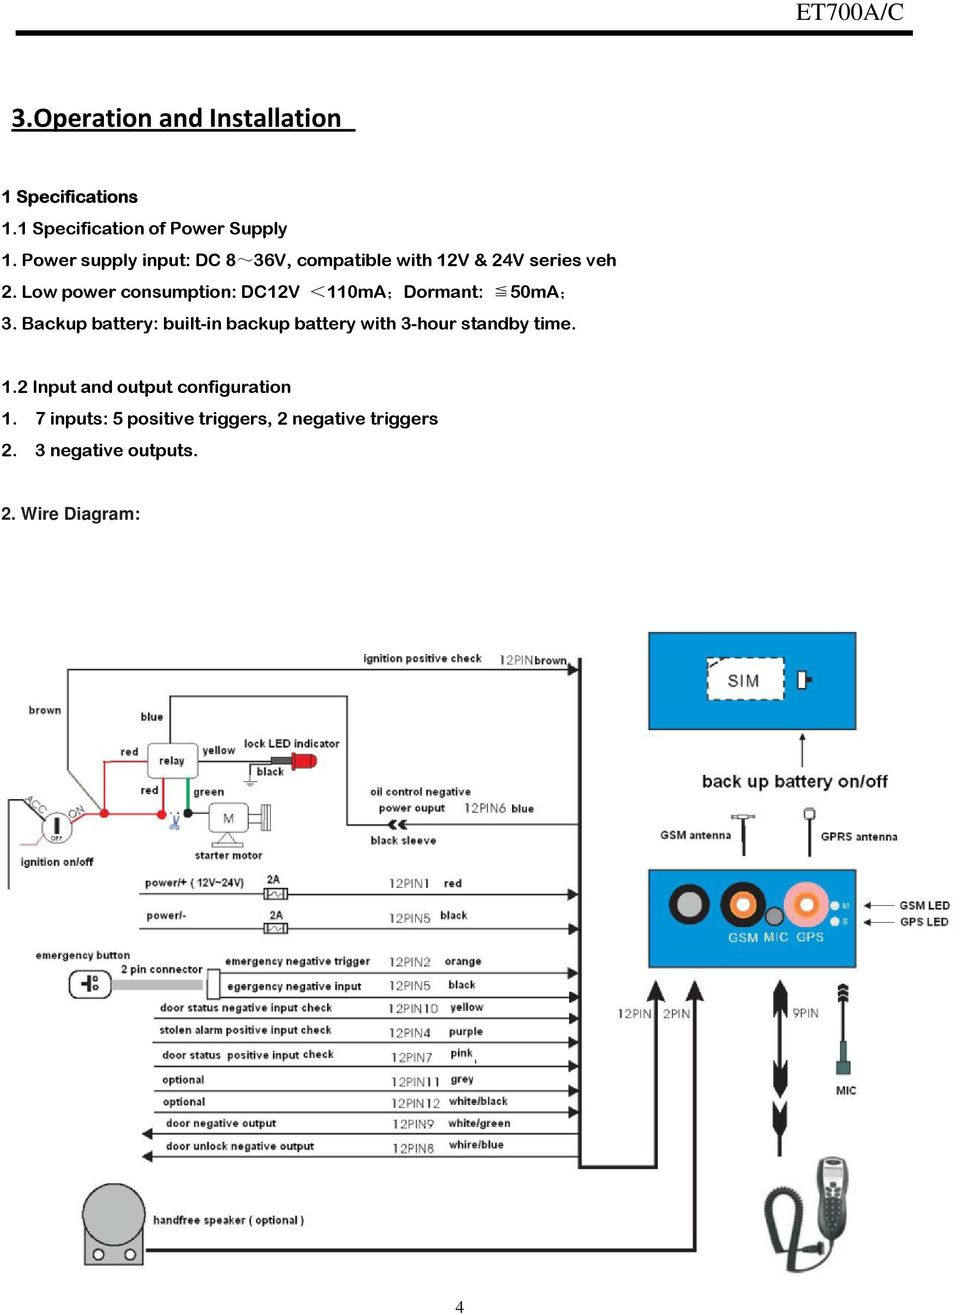 hight resolution of wire diagram 4 low power consumption dc12v 110ma dormant 50ma